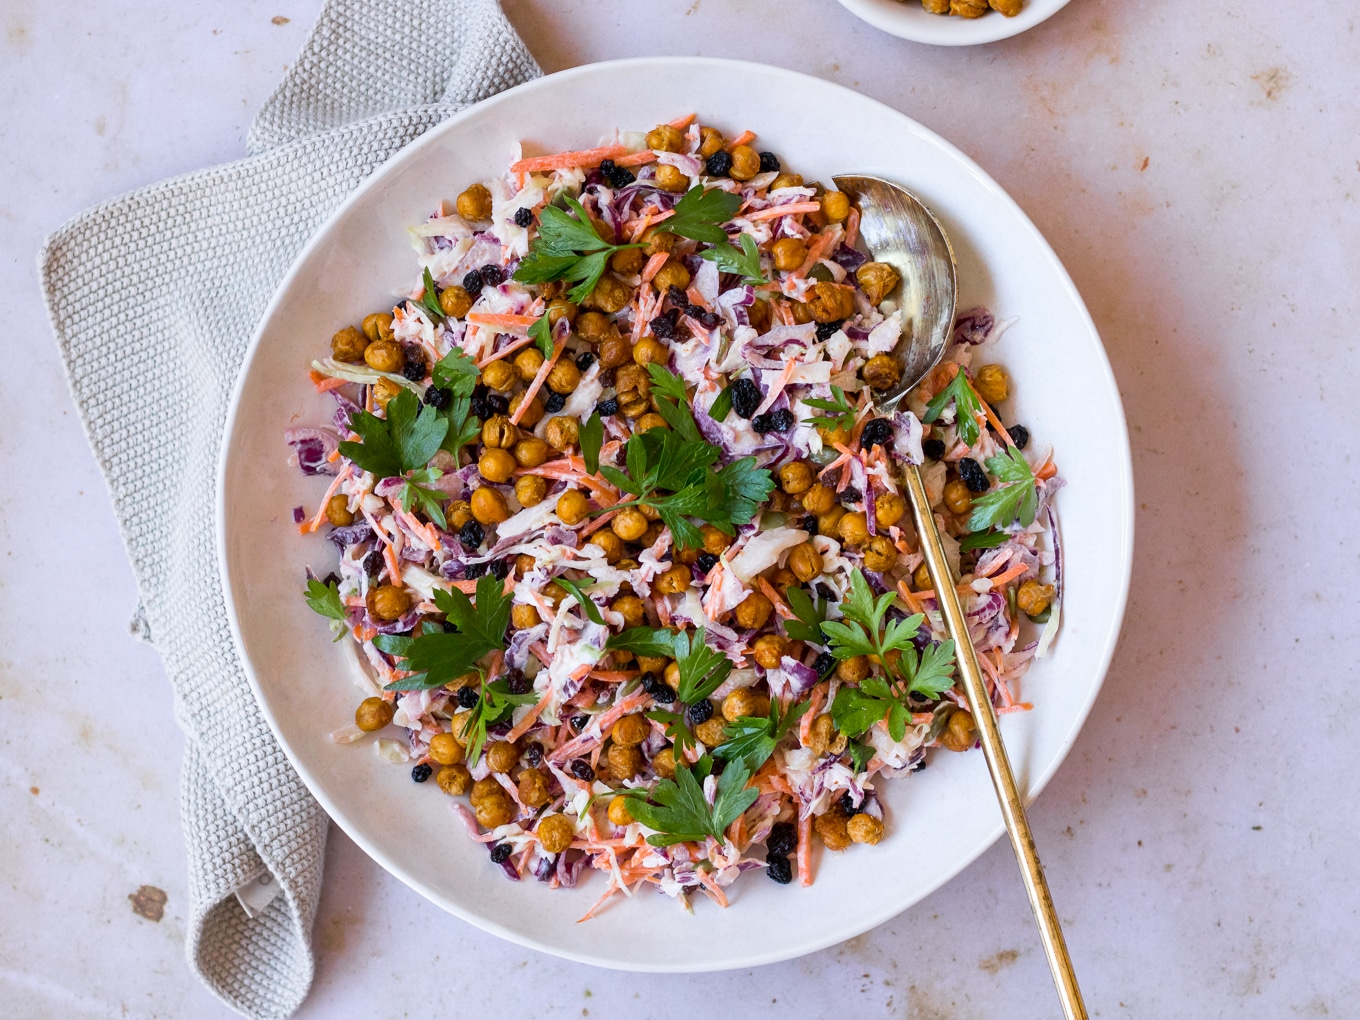 Healthy Yoghurt Slaw with Roasted Chickpeas, recipe by Nourish Every Day